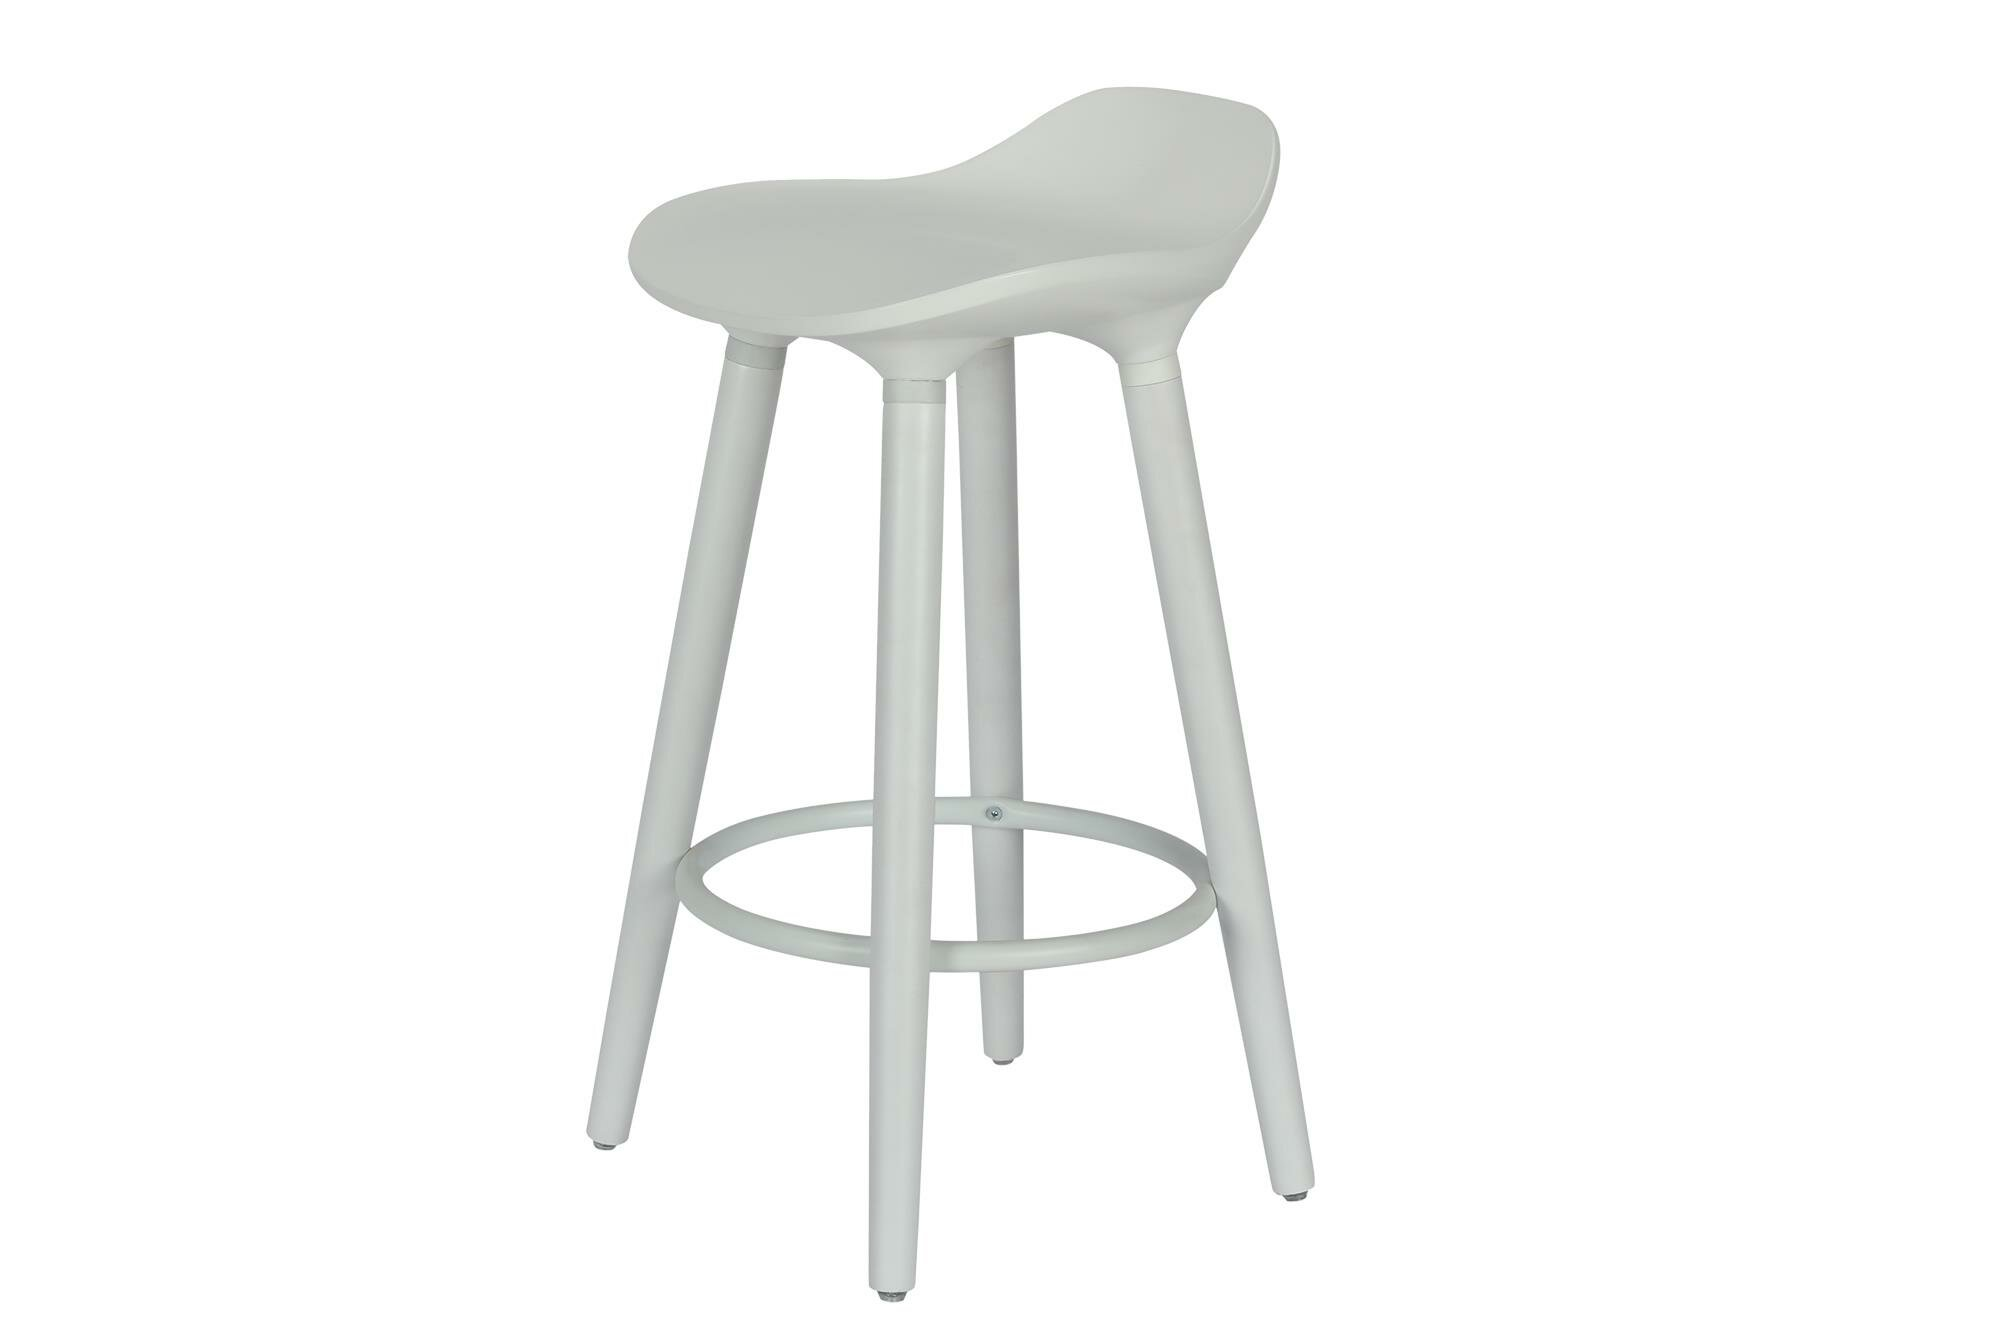 Enjoyable Wade Logan Escalon 25 Bar Stool Gmtry Best Dining Table And Chair Ideas Images Gmtryco